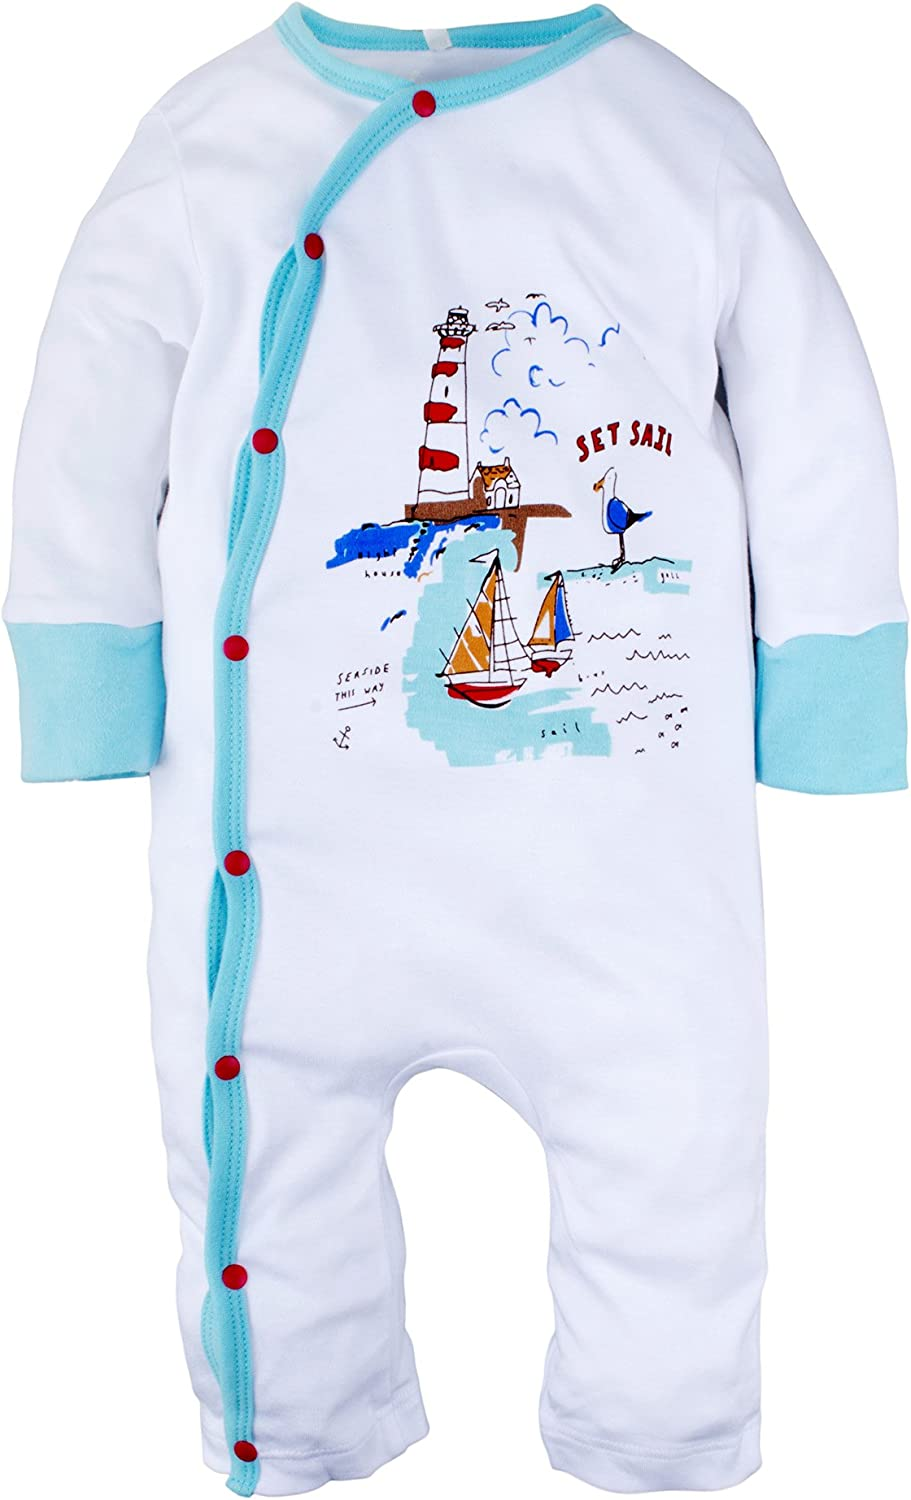 Yinson Baby Toddler Boys Loose Fit Onesies Pajamas Sleepwear Footed and Footless 0-4 Years